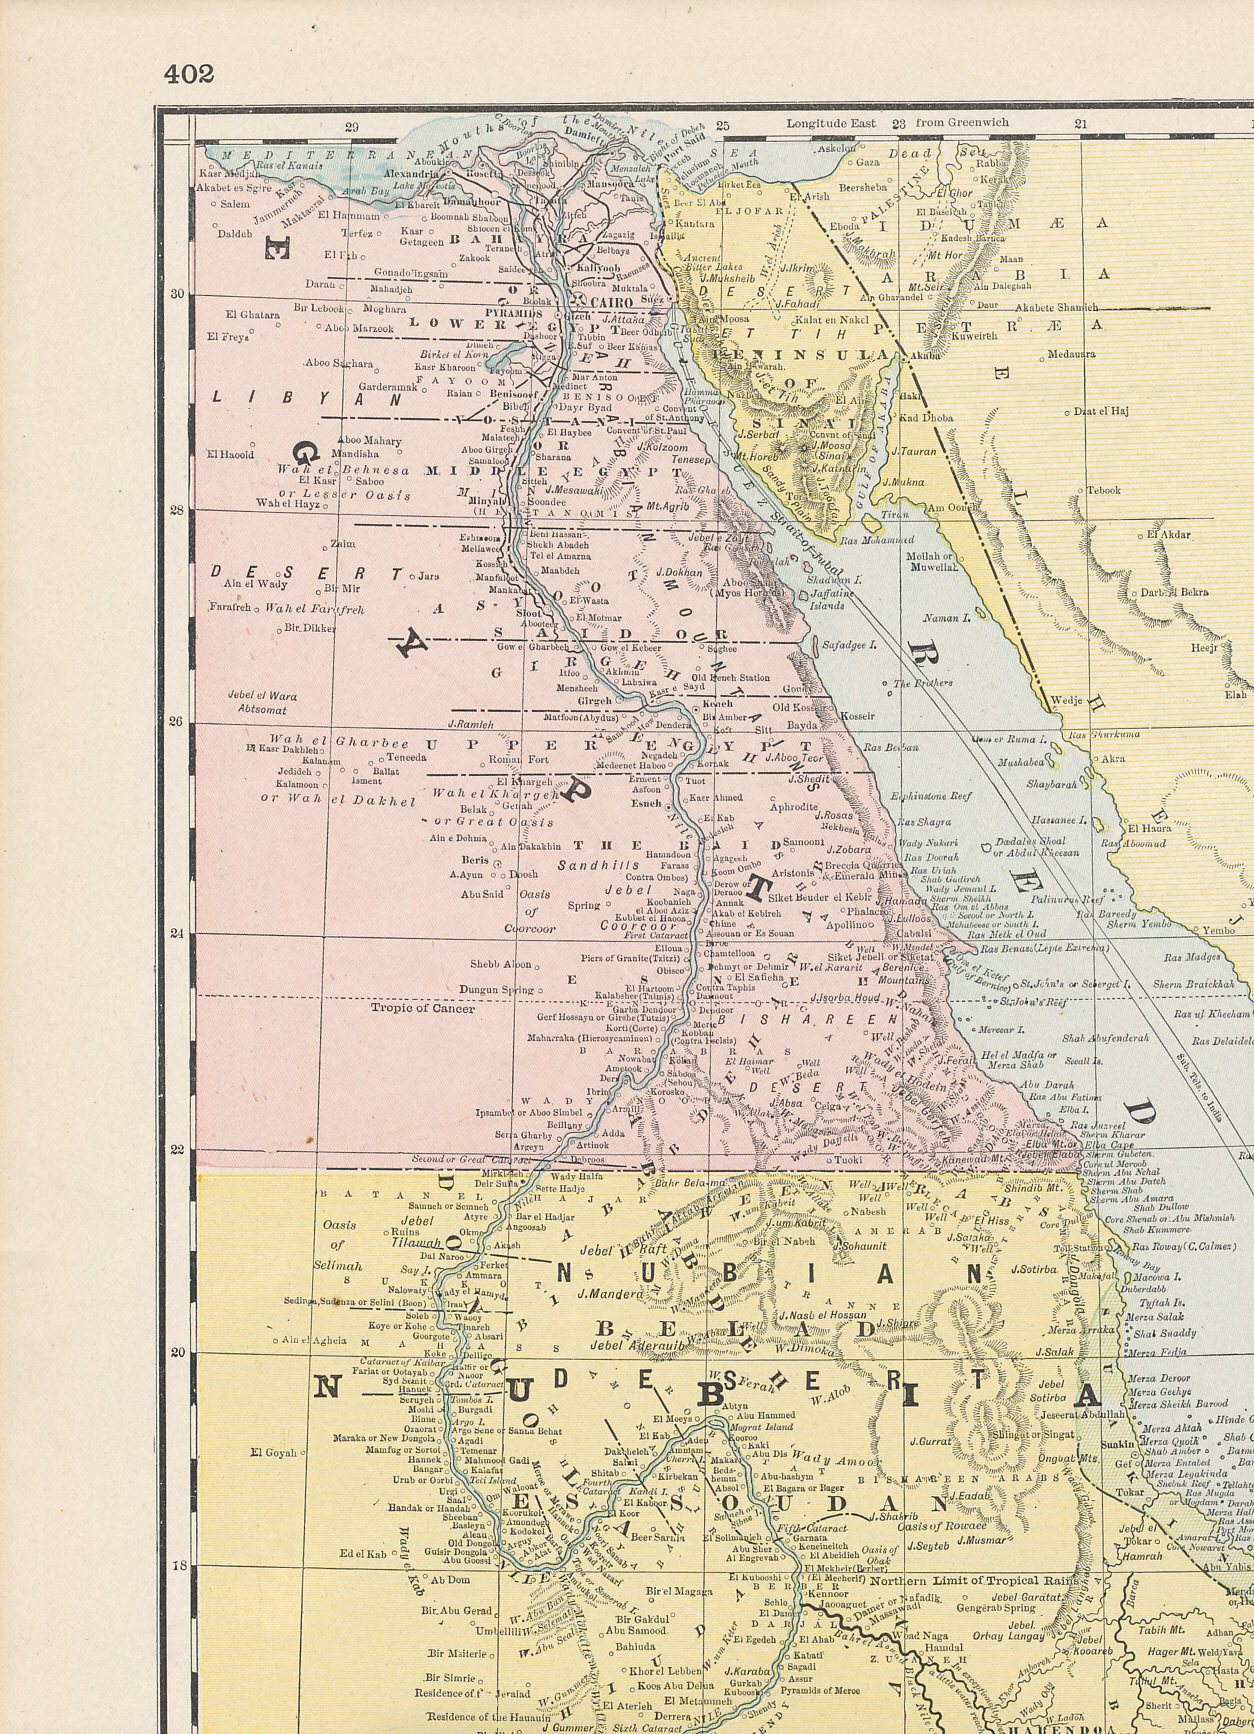 Egypt and Sinai from Cram's 1896 Railway Map of the Turkish Empire.